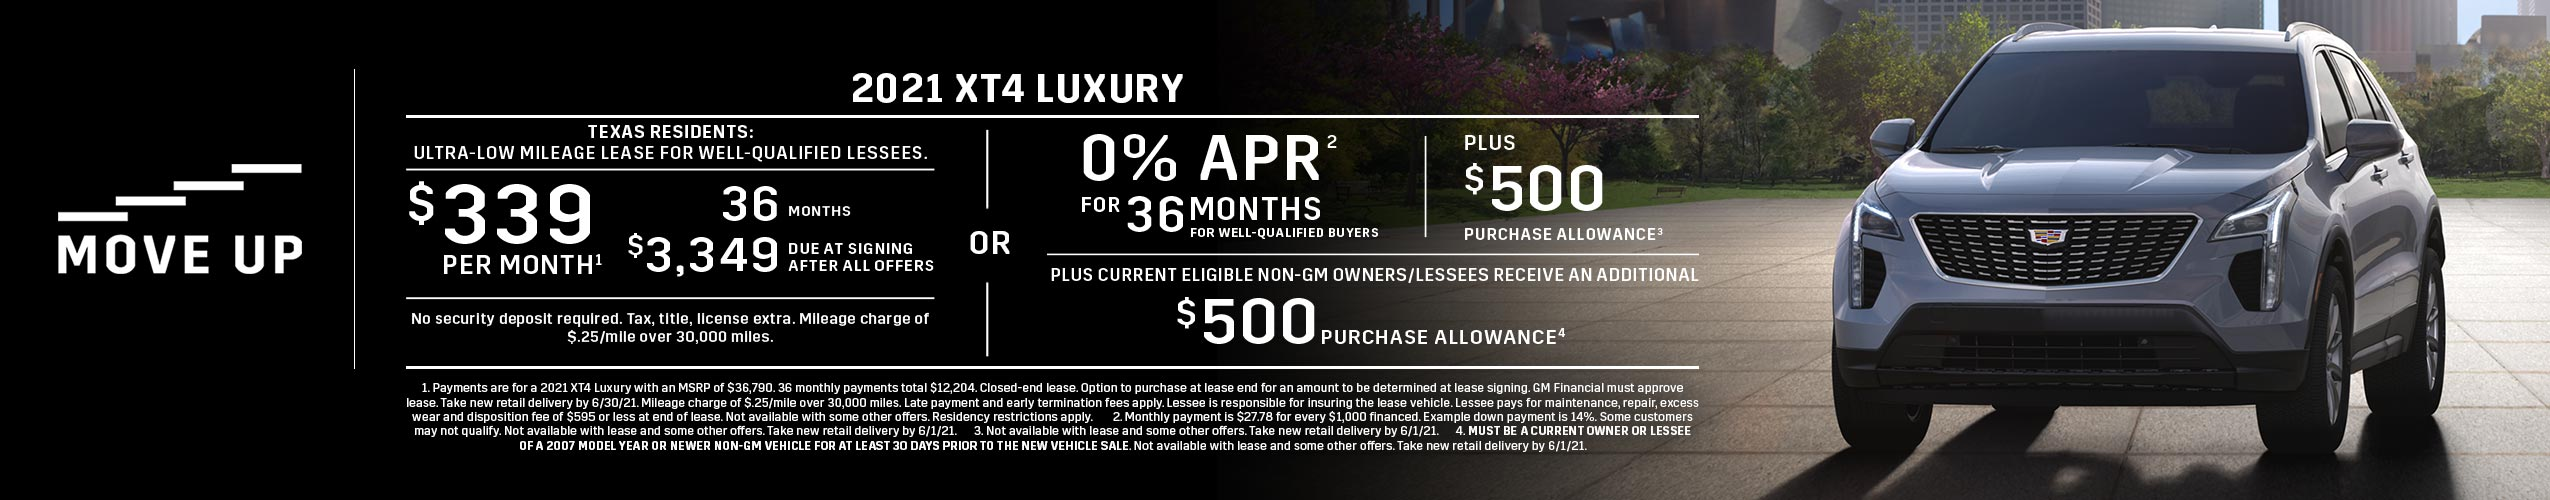 2021 XT4 Luxury: Lease or APR Offer (Image) - 64f7f7